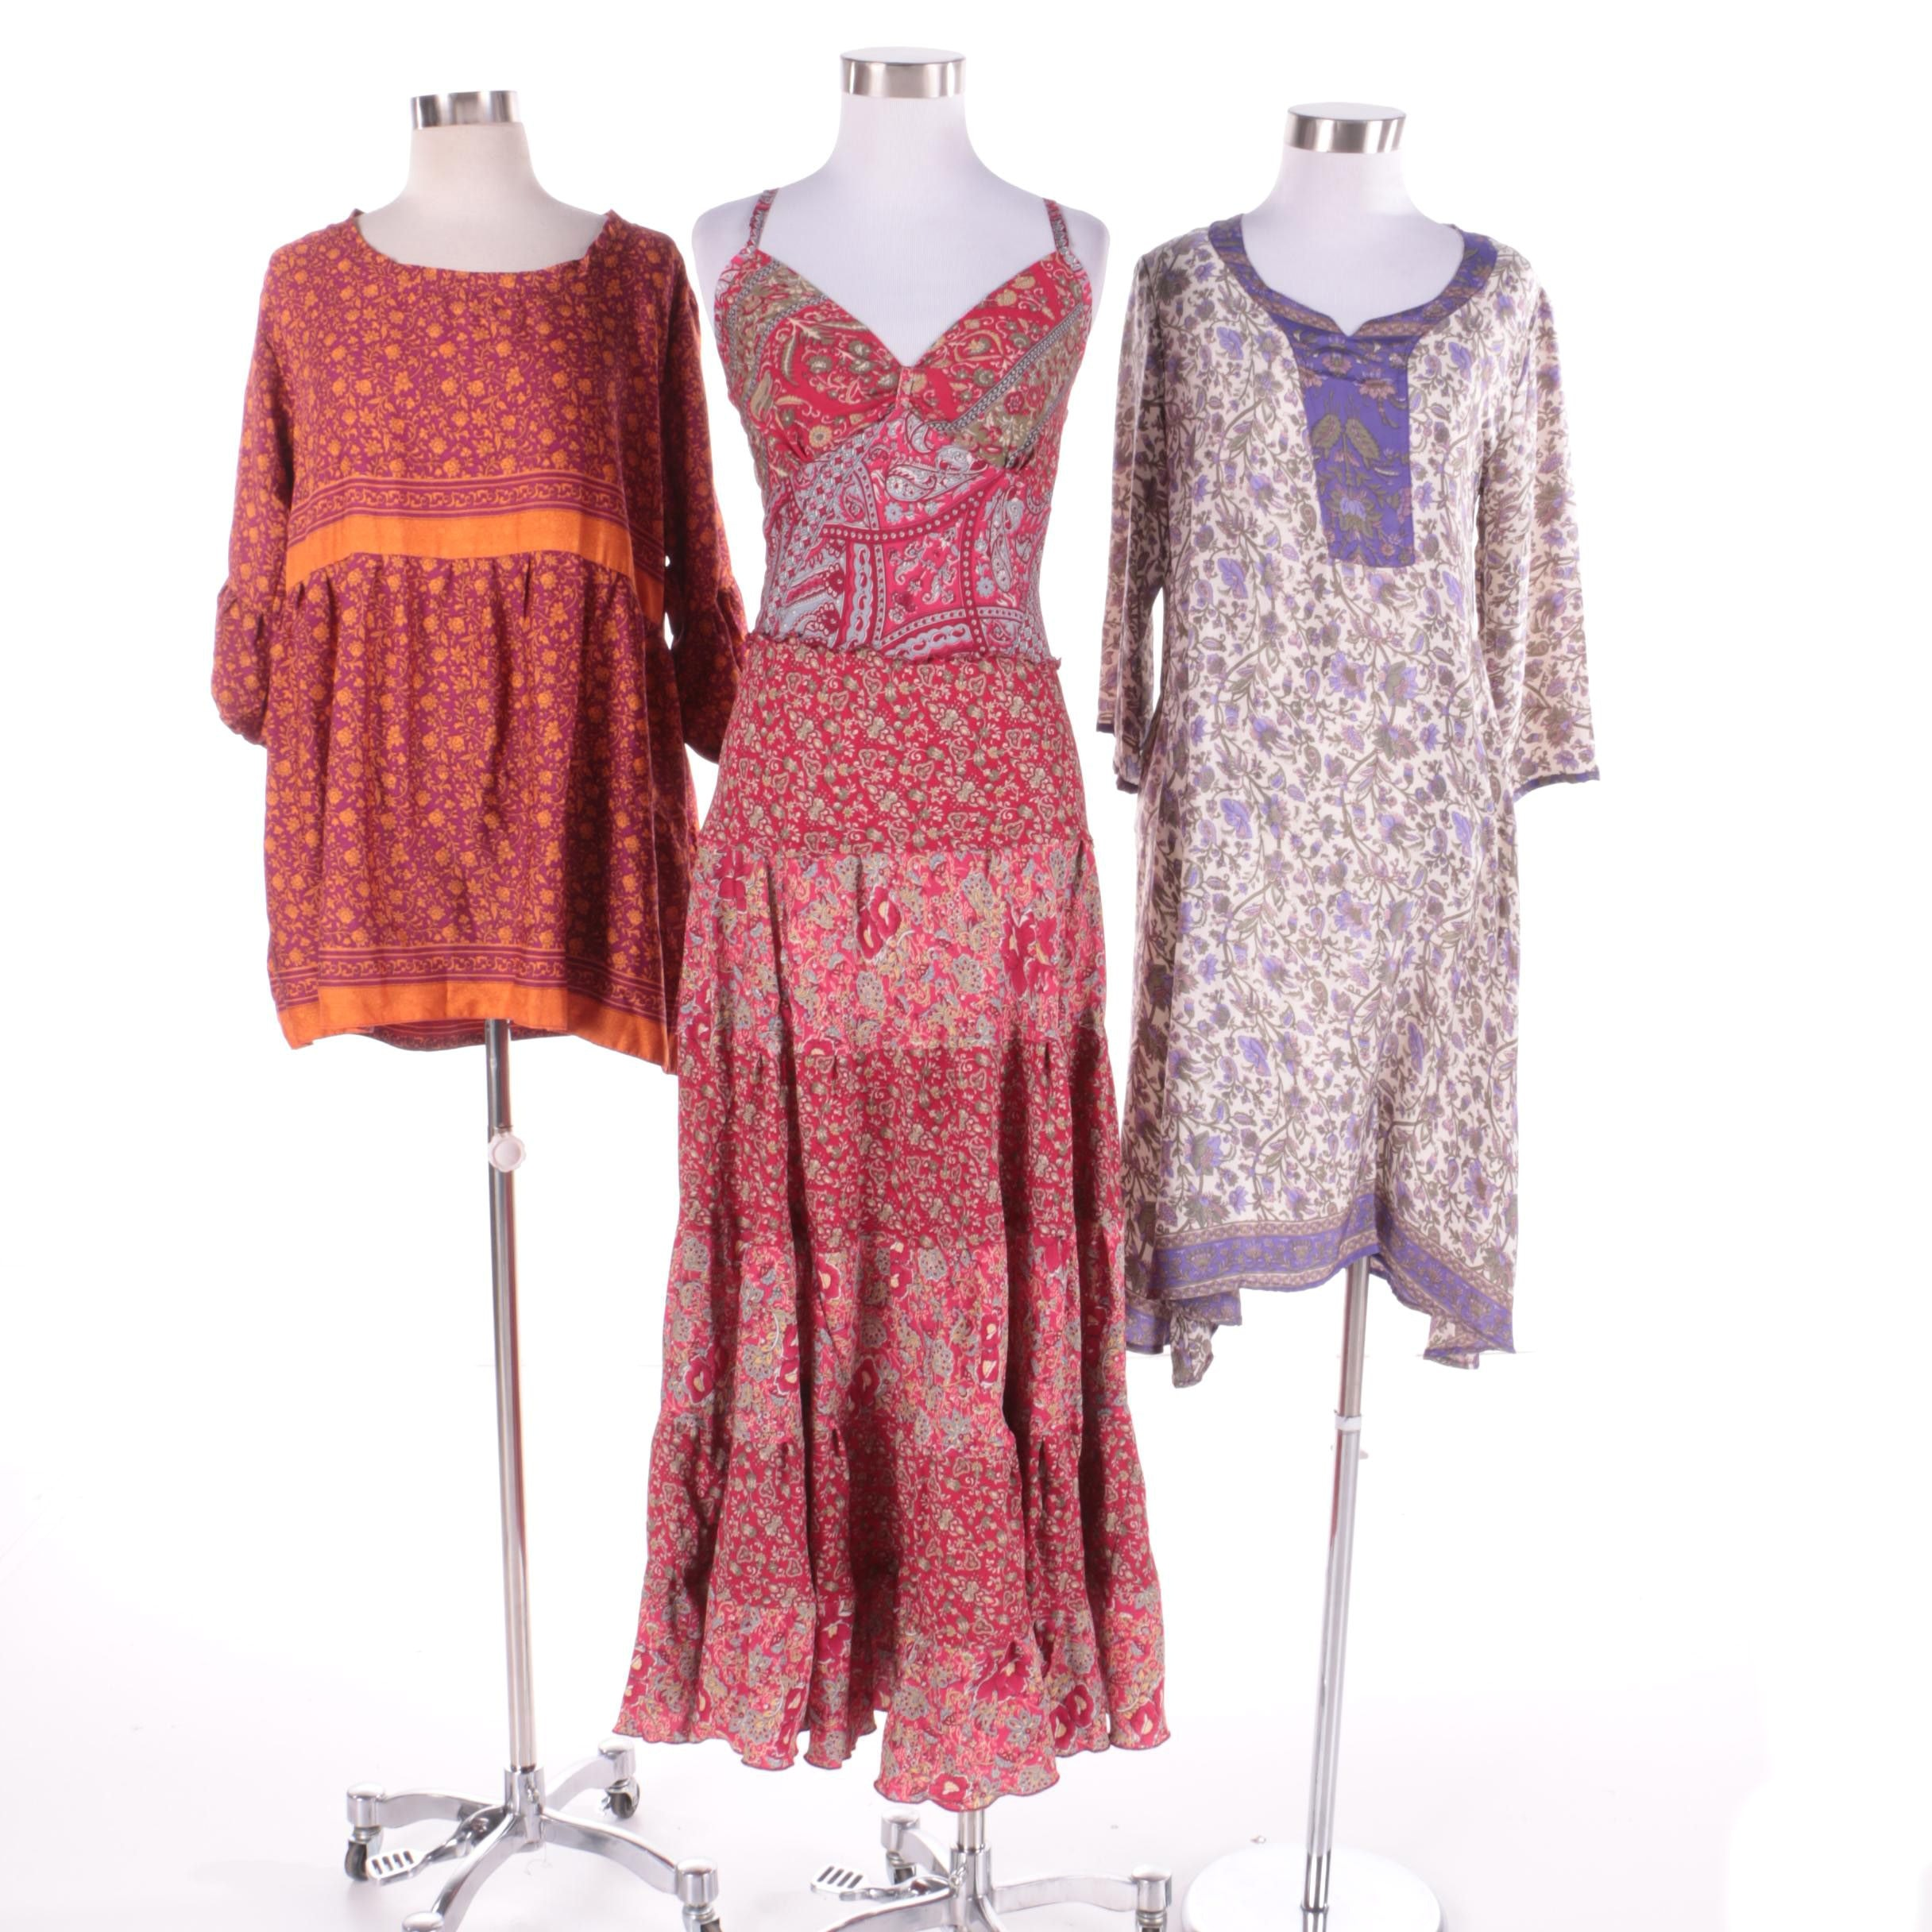 Aller Simplement Floral Dresses and Tunic Made From Upcycled Vintage Saris